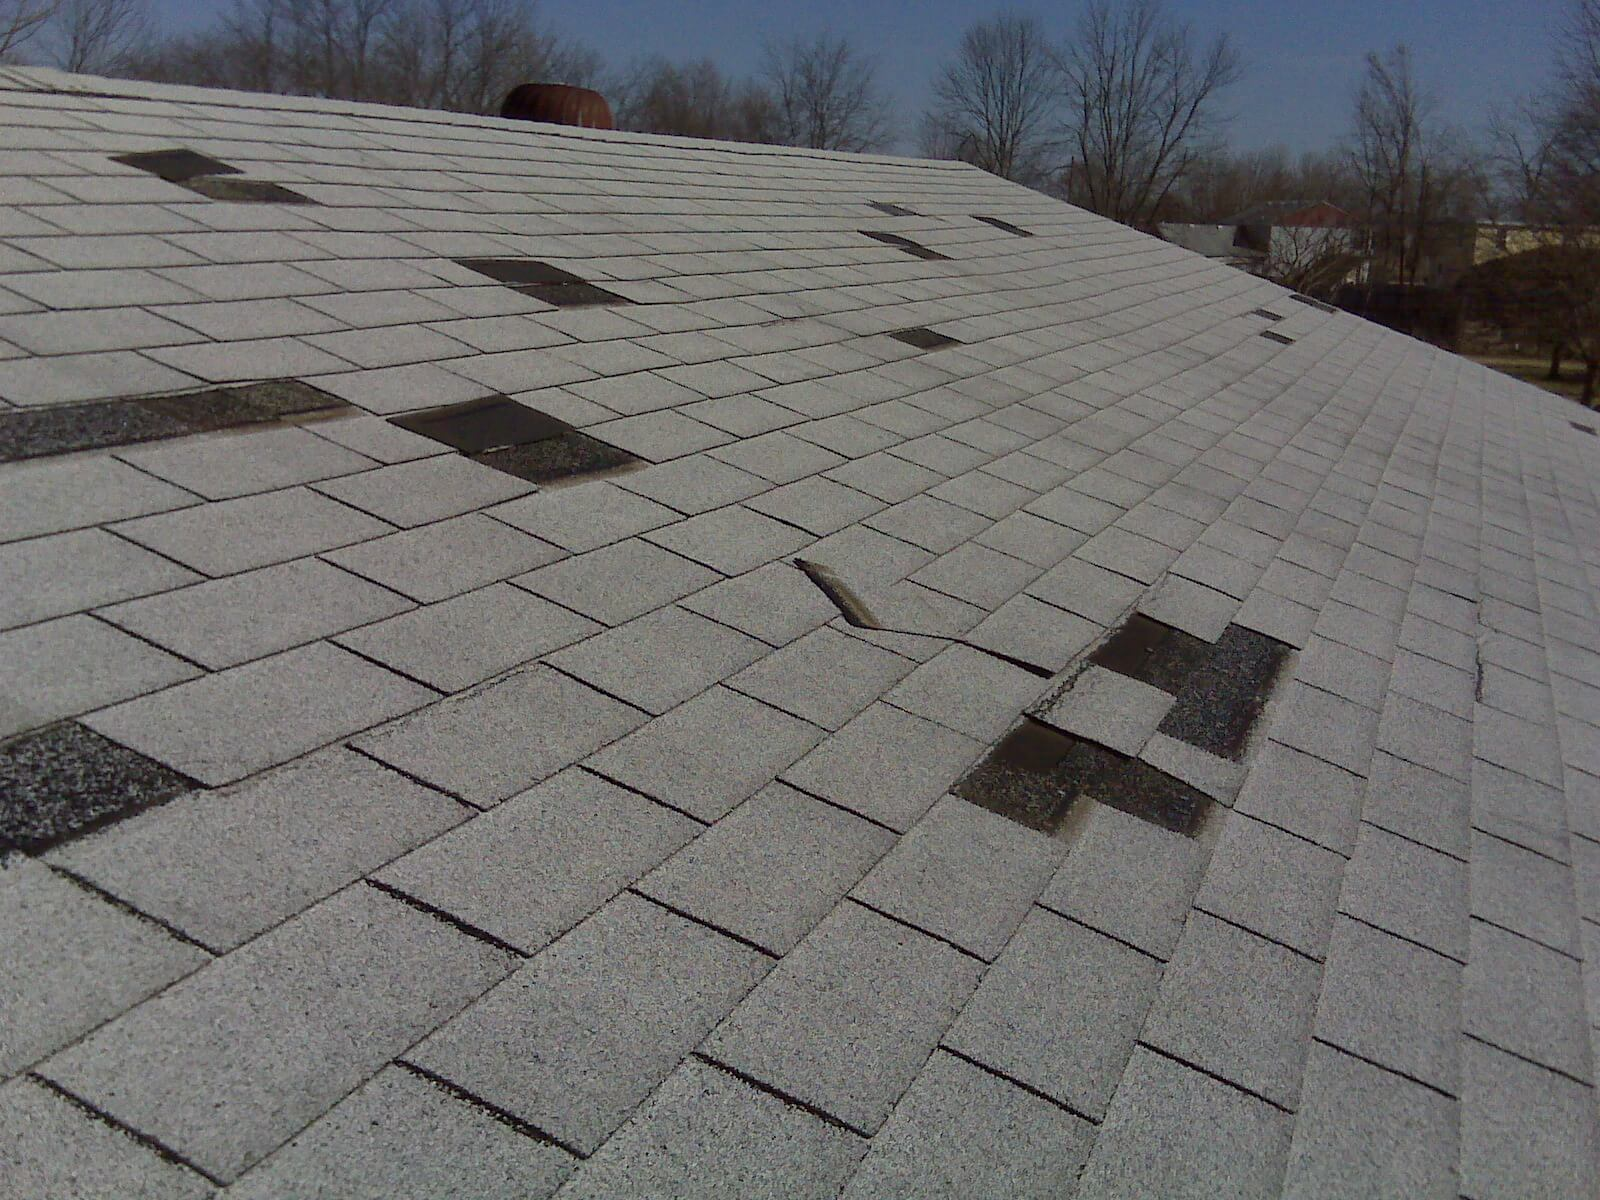 How to Market Your Roofing Business on Facebook